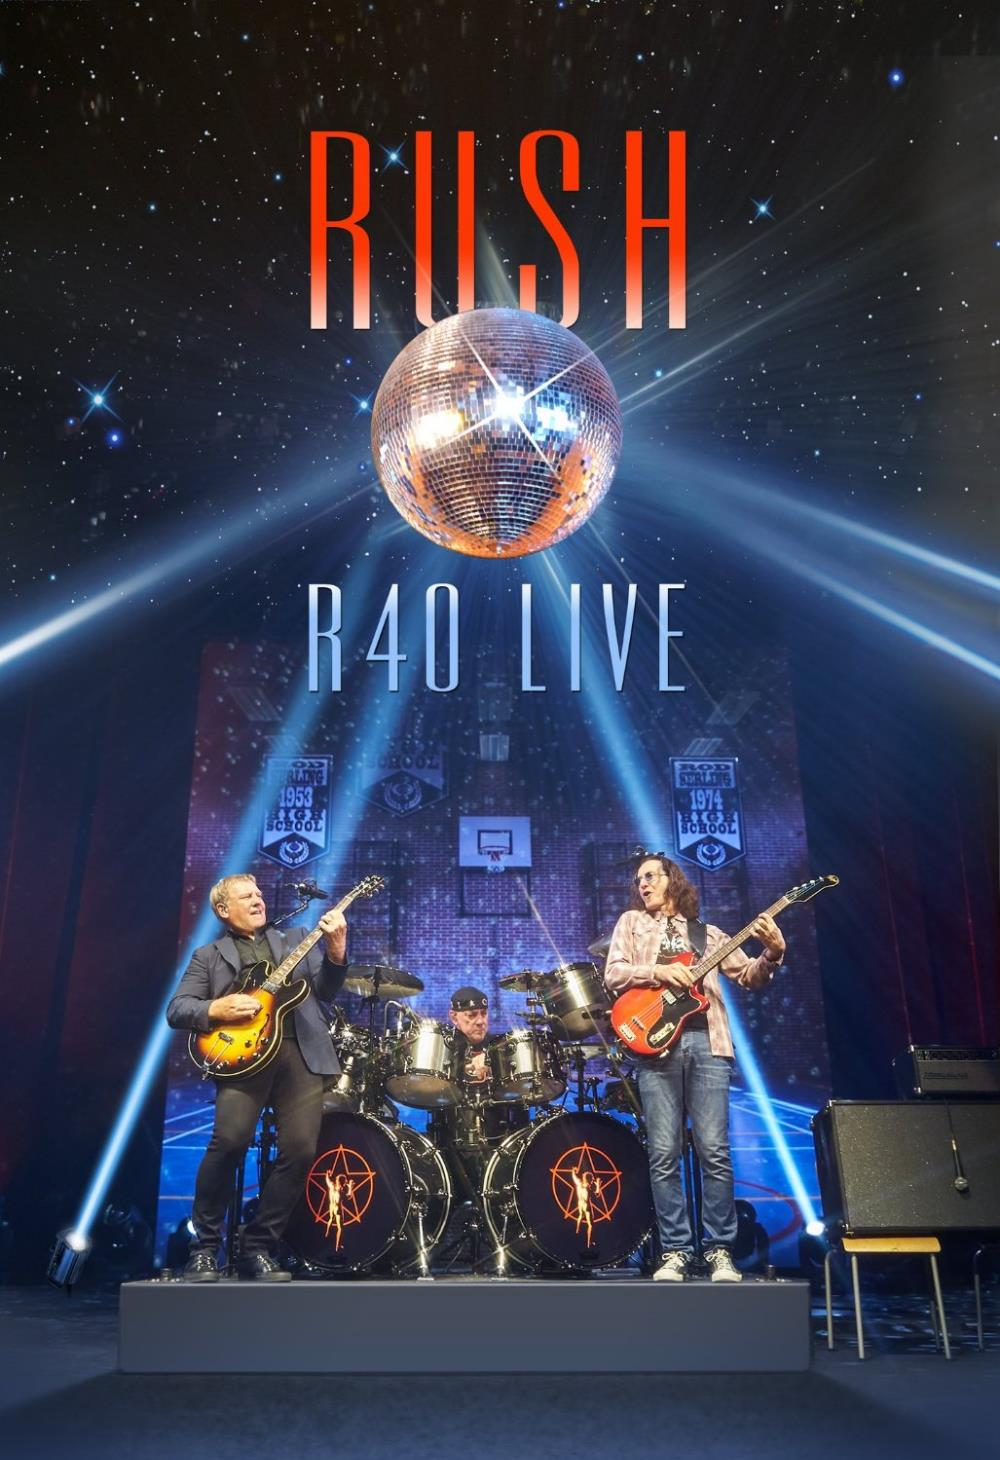 R40 Live by RUSH album cover